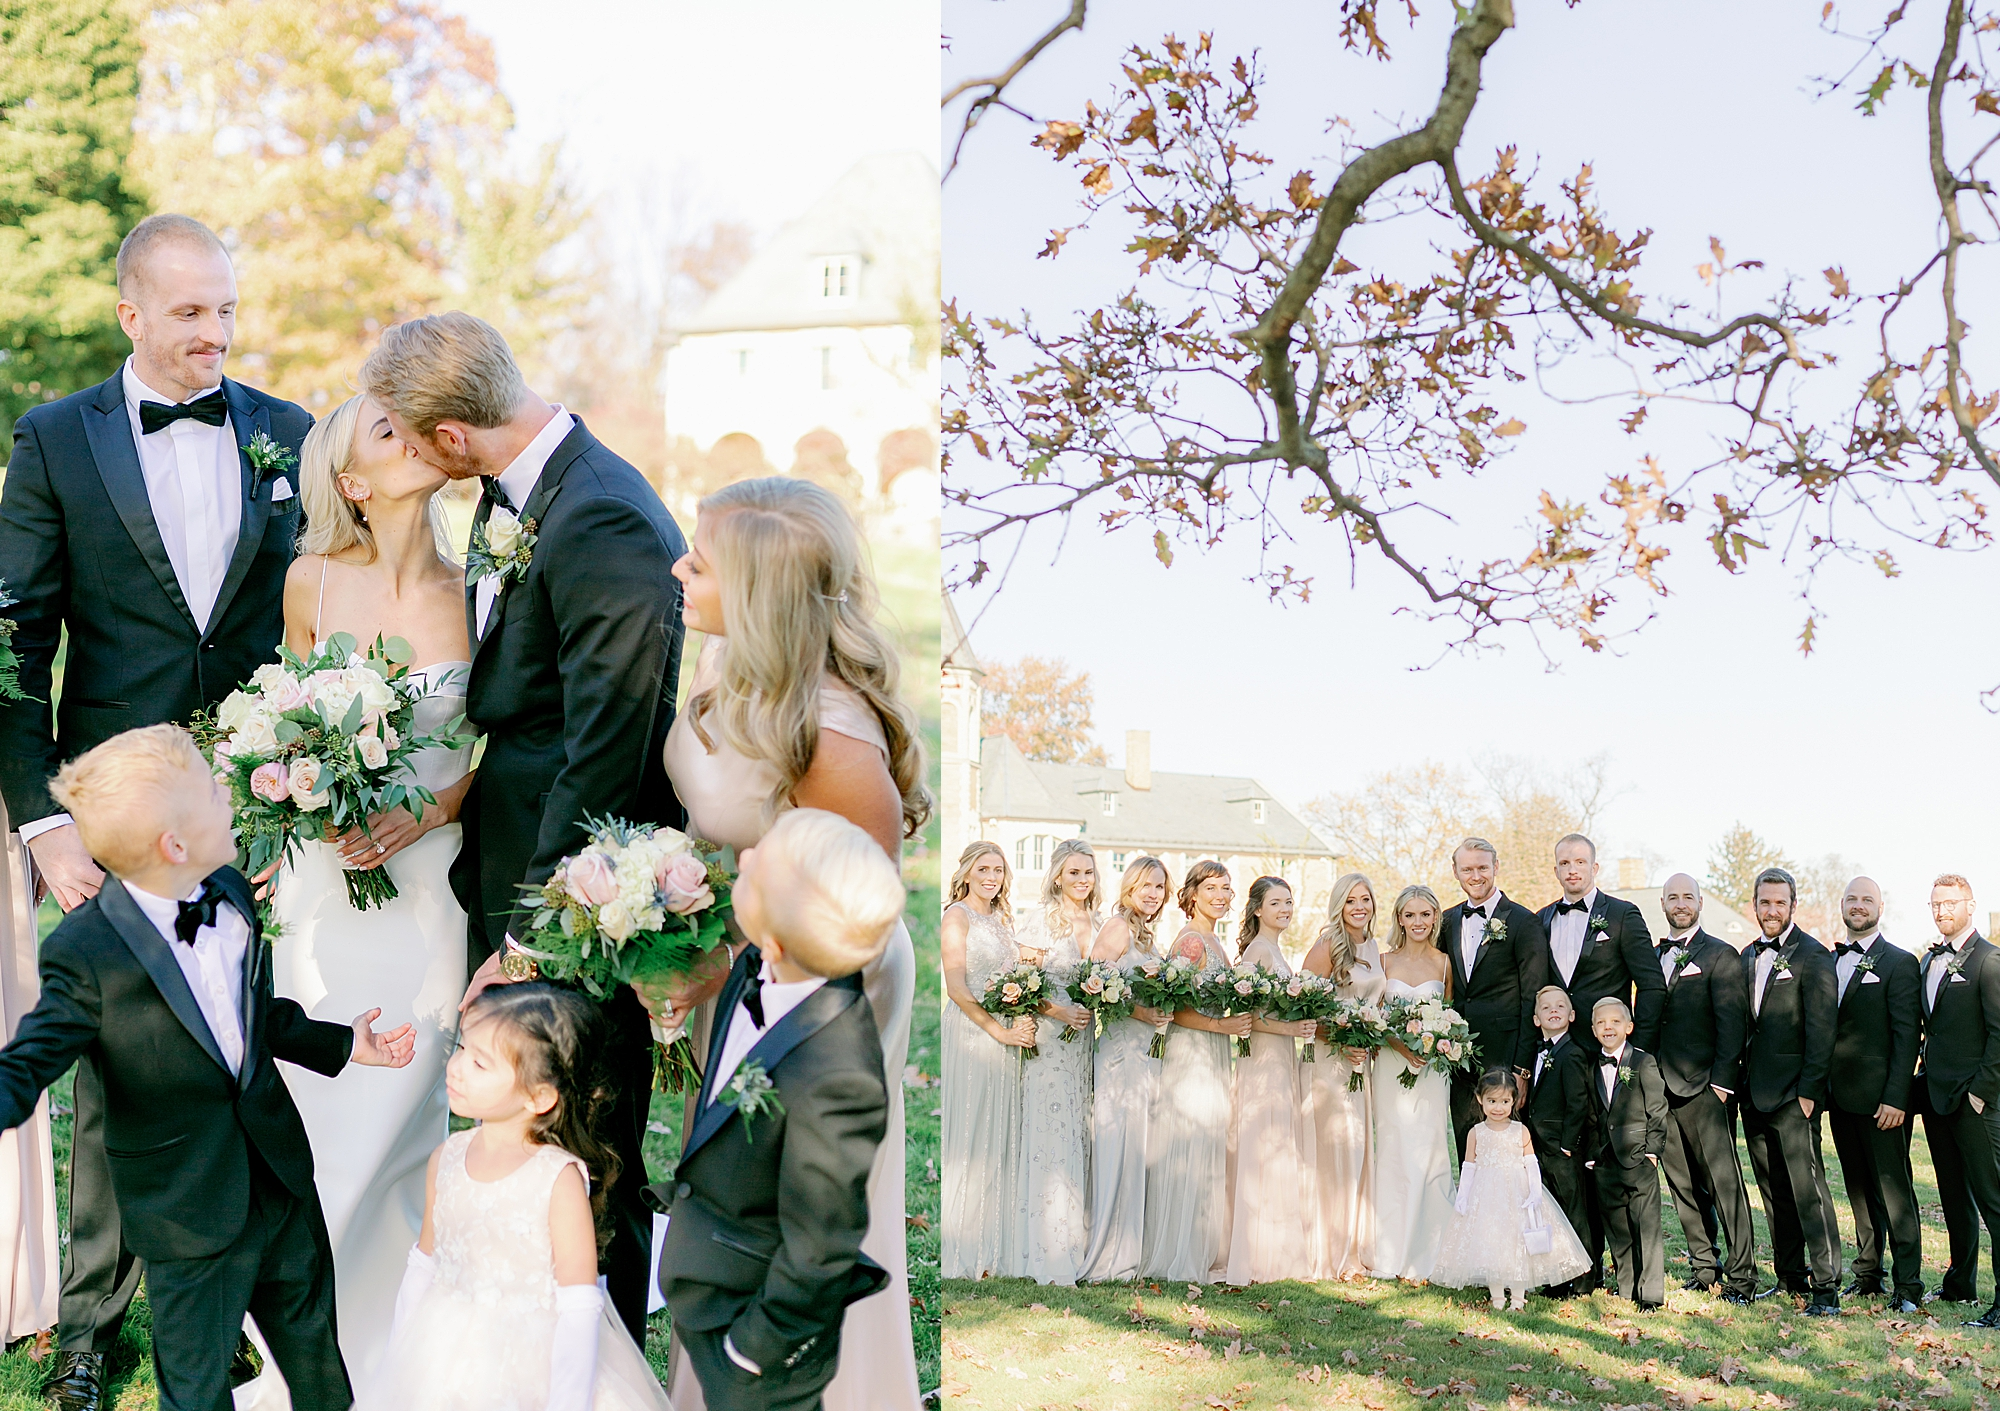 Film Wedding Photography at Cairnwood Estate by Magdalena Studios 0030.